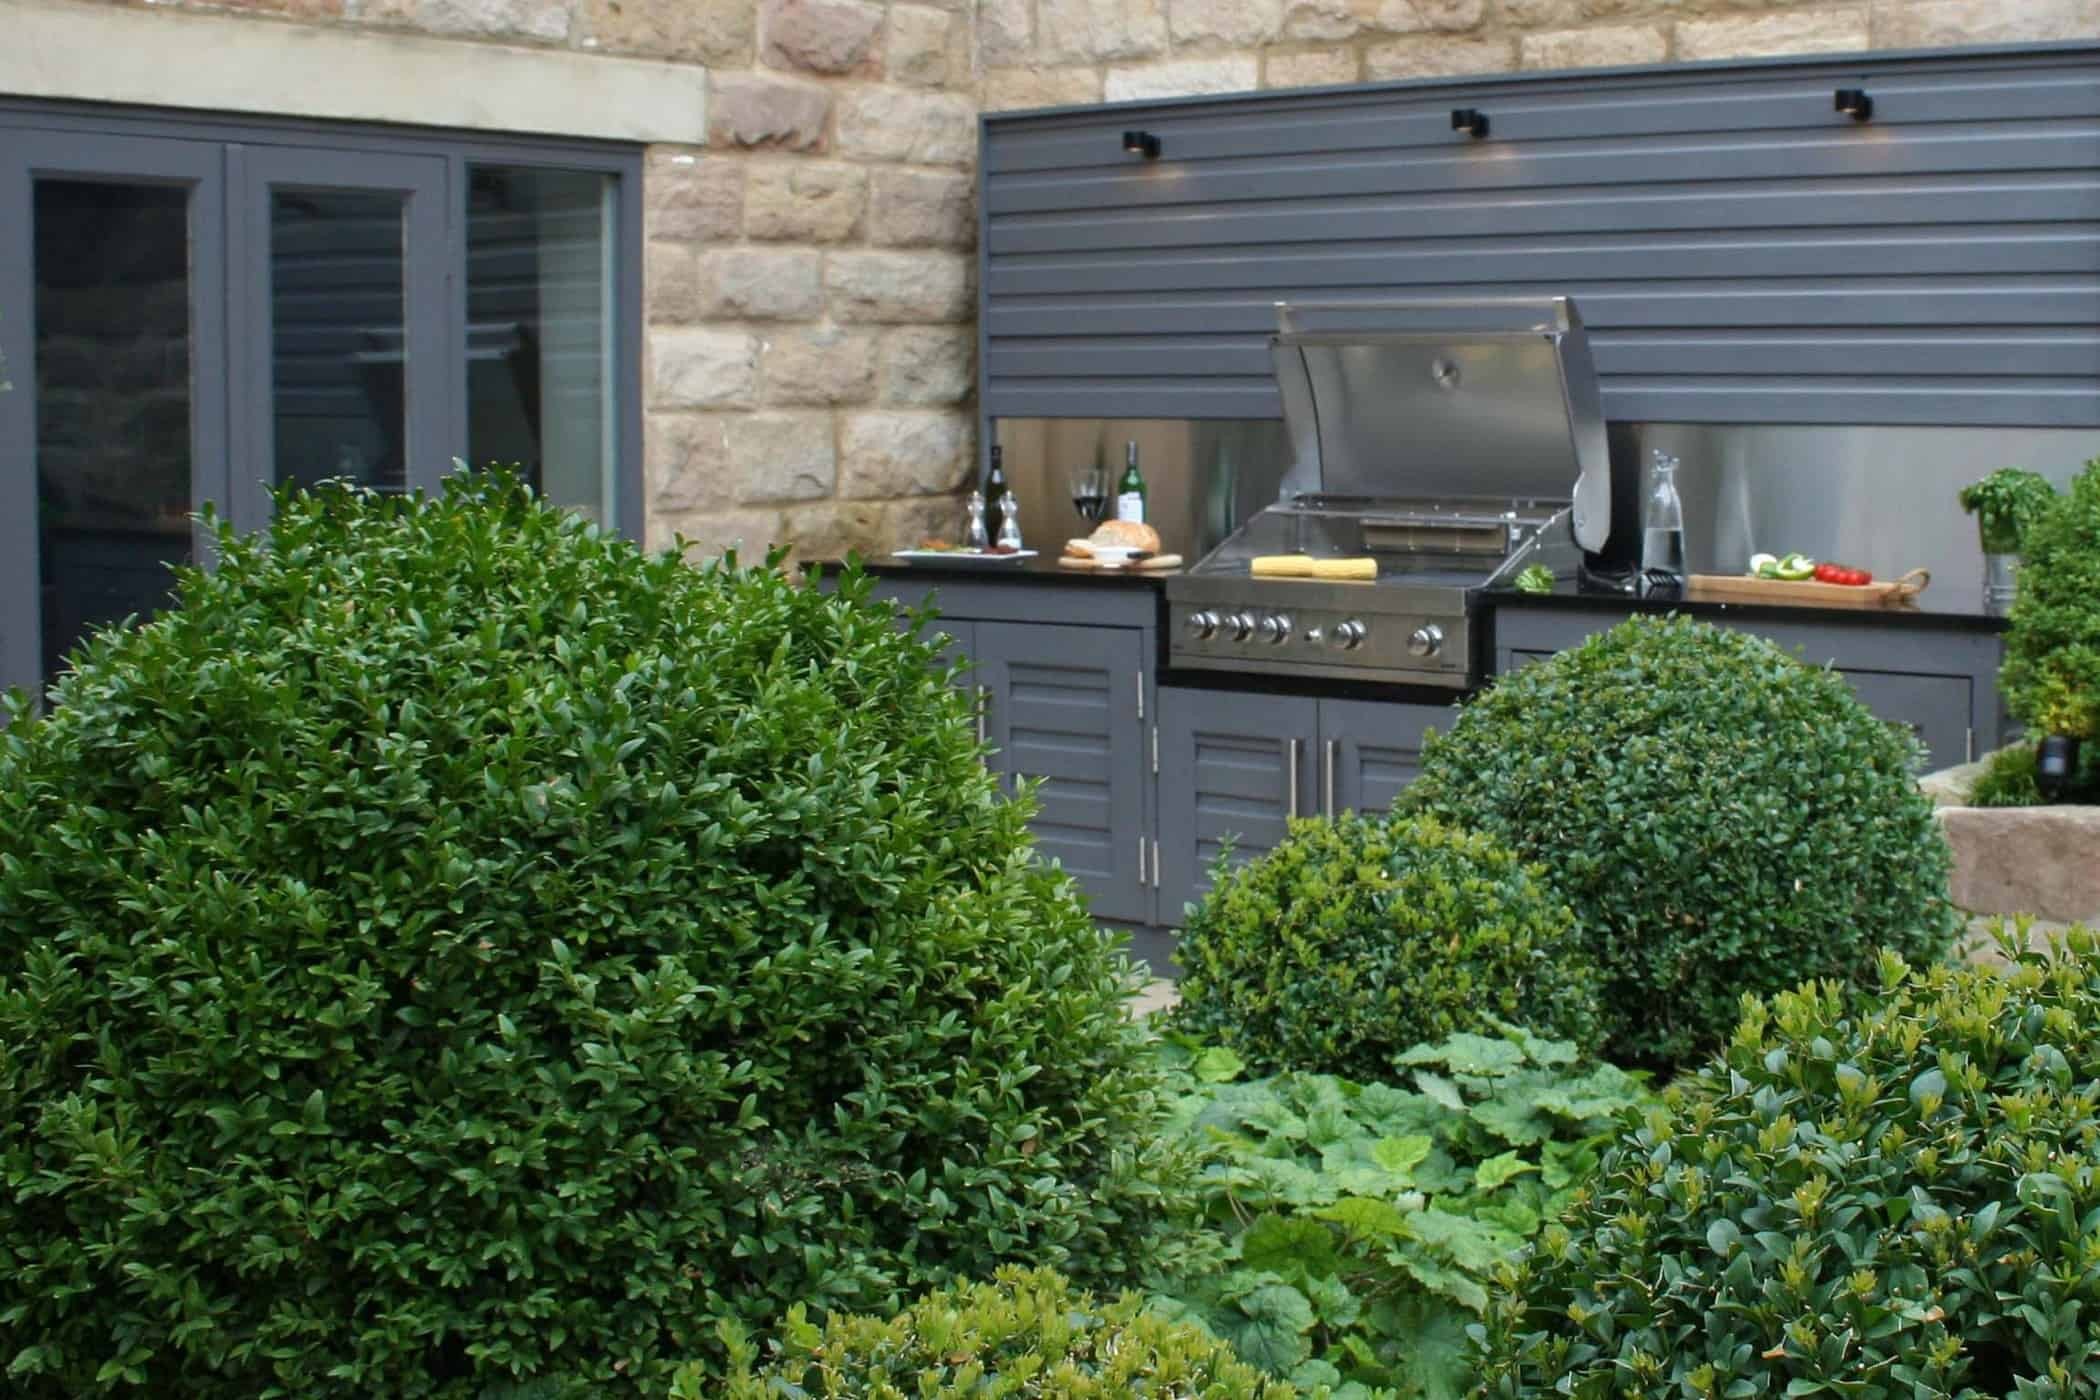 Outdoor Kitchen, Bestall & Co, Garden design, BBQ Outdoor Kitchen, Bestall & Co, Garden design, BBQ